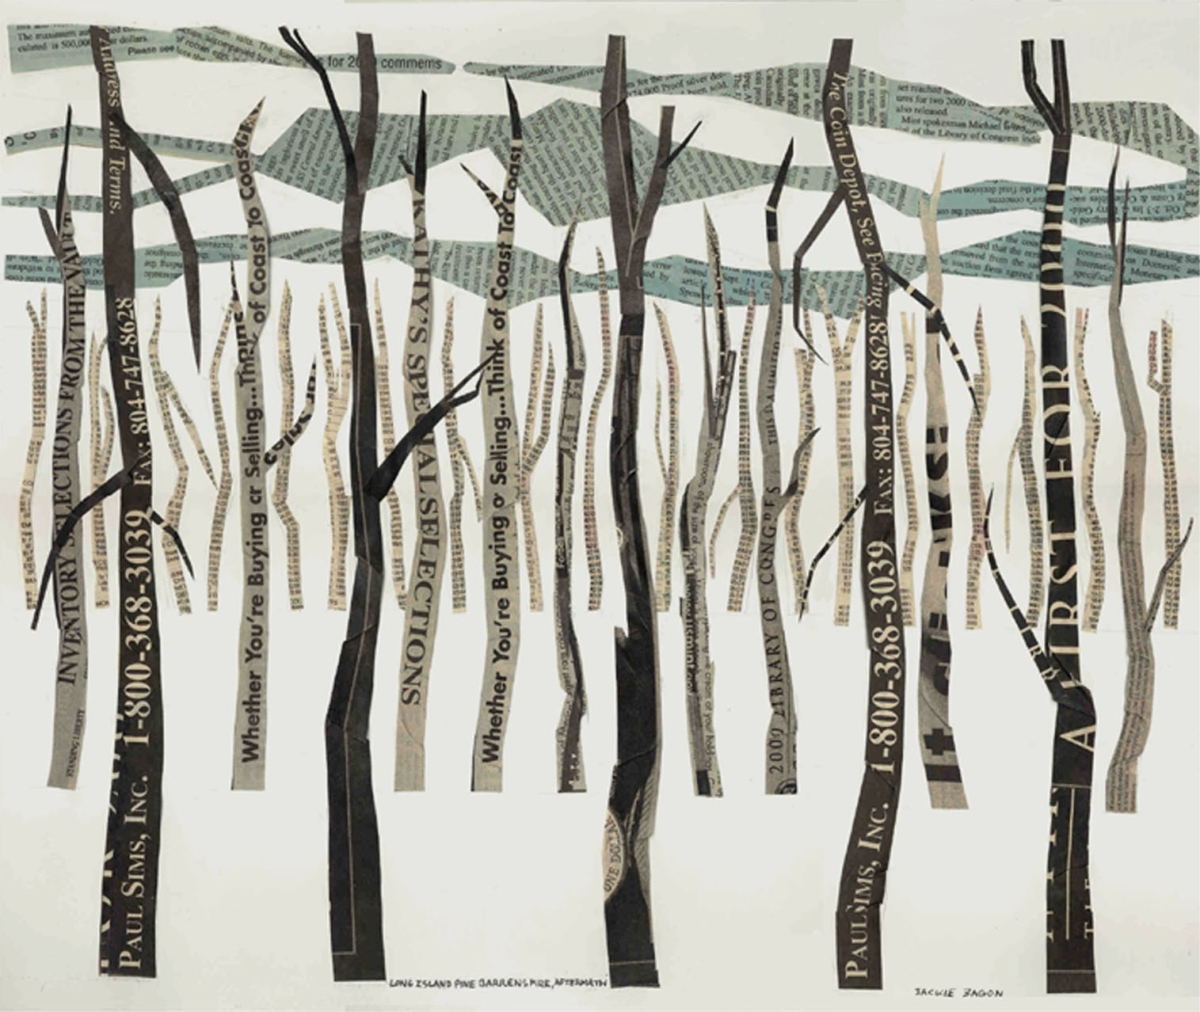 Jackie Zagon, strong, collage, minimalist , environmentalist theme, depicts  beauty in destruction, burnt trees, clouds,elements cut from coin collecting periodical to express the multiple value of our woodlands, ,  provocative,